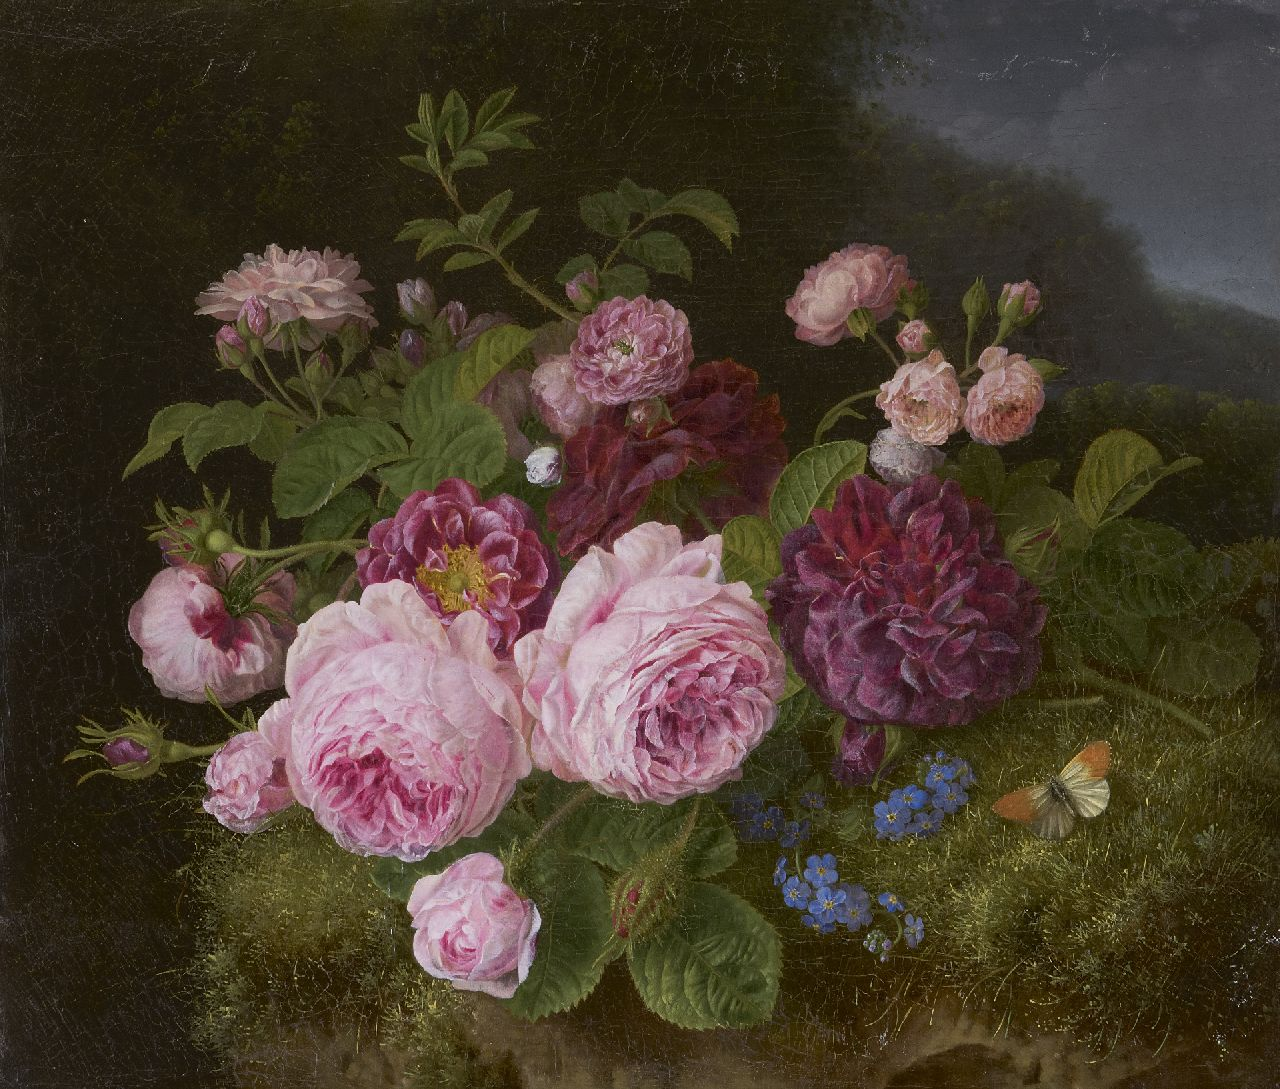 'Henriëtte' Geertruida Knip | Roses on the forest soil, oil on canvas, 36.3 x 42.7 cm